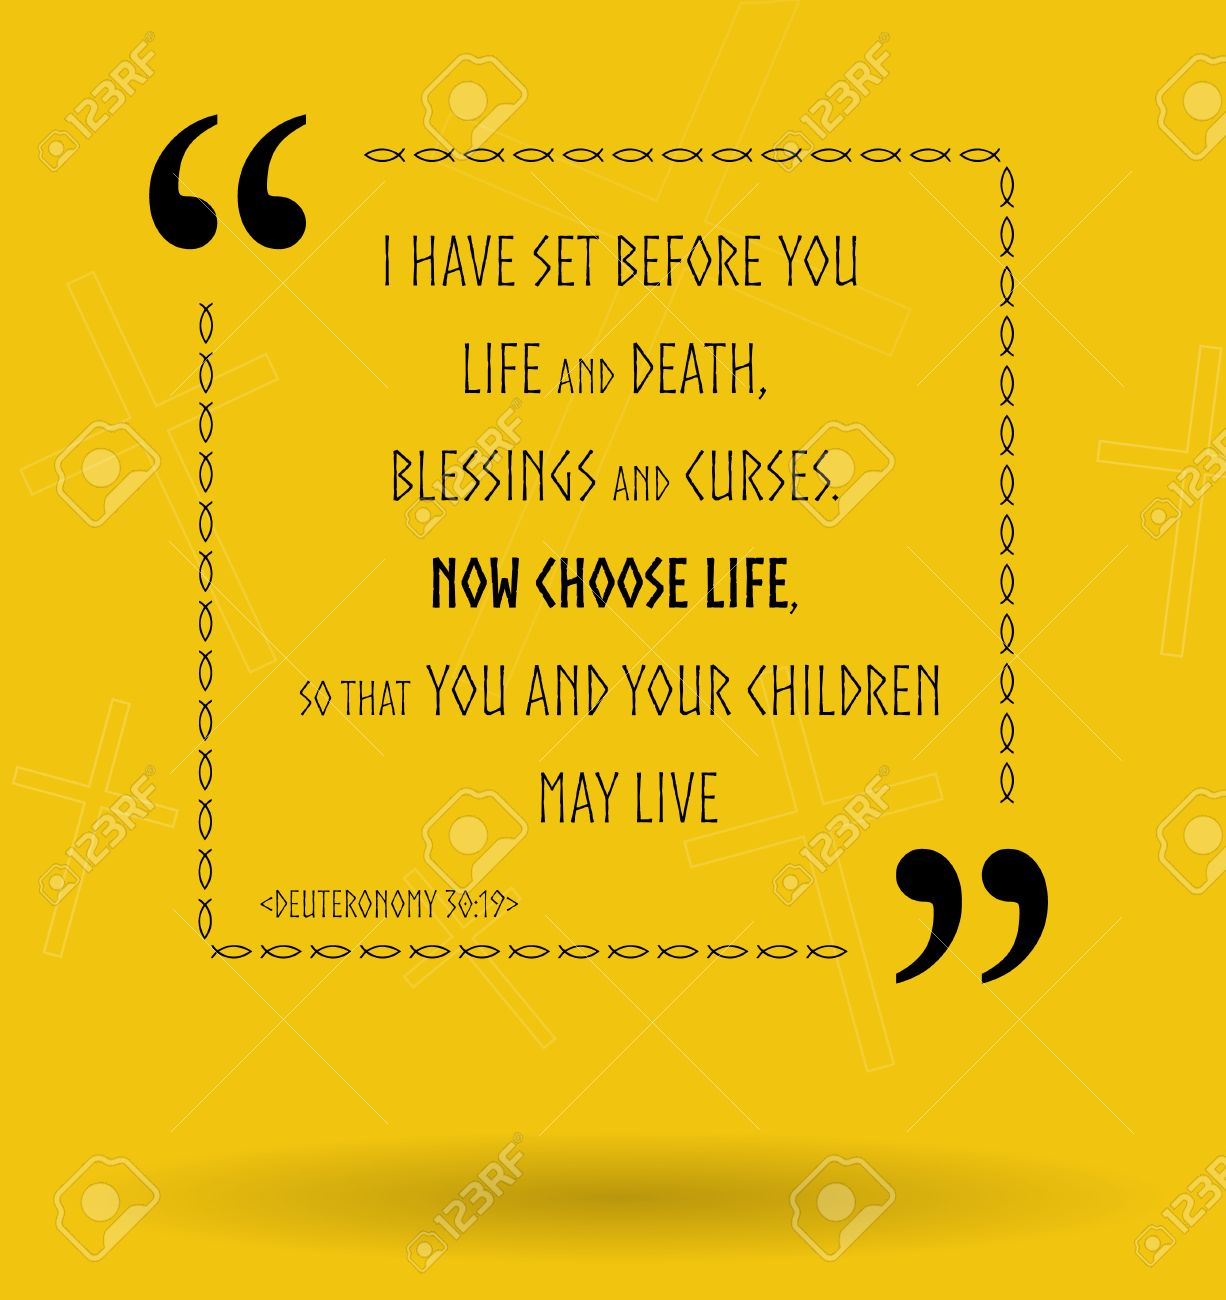 Bible Life Quotes Best Bible Quotes About Life Choice And How To Choose Life